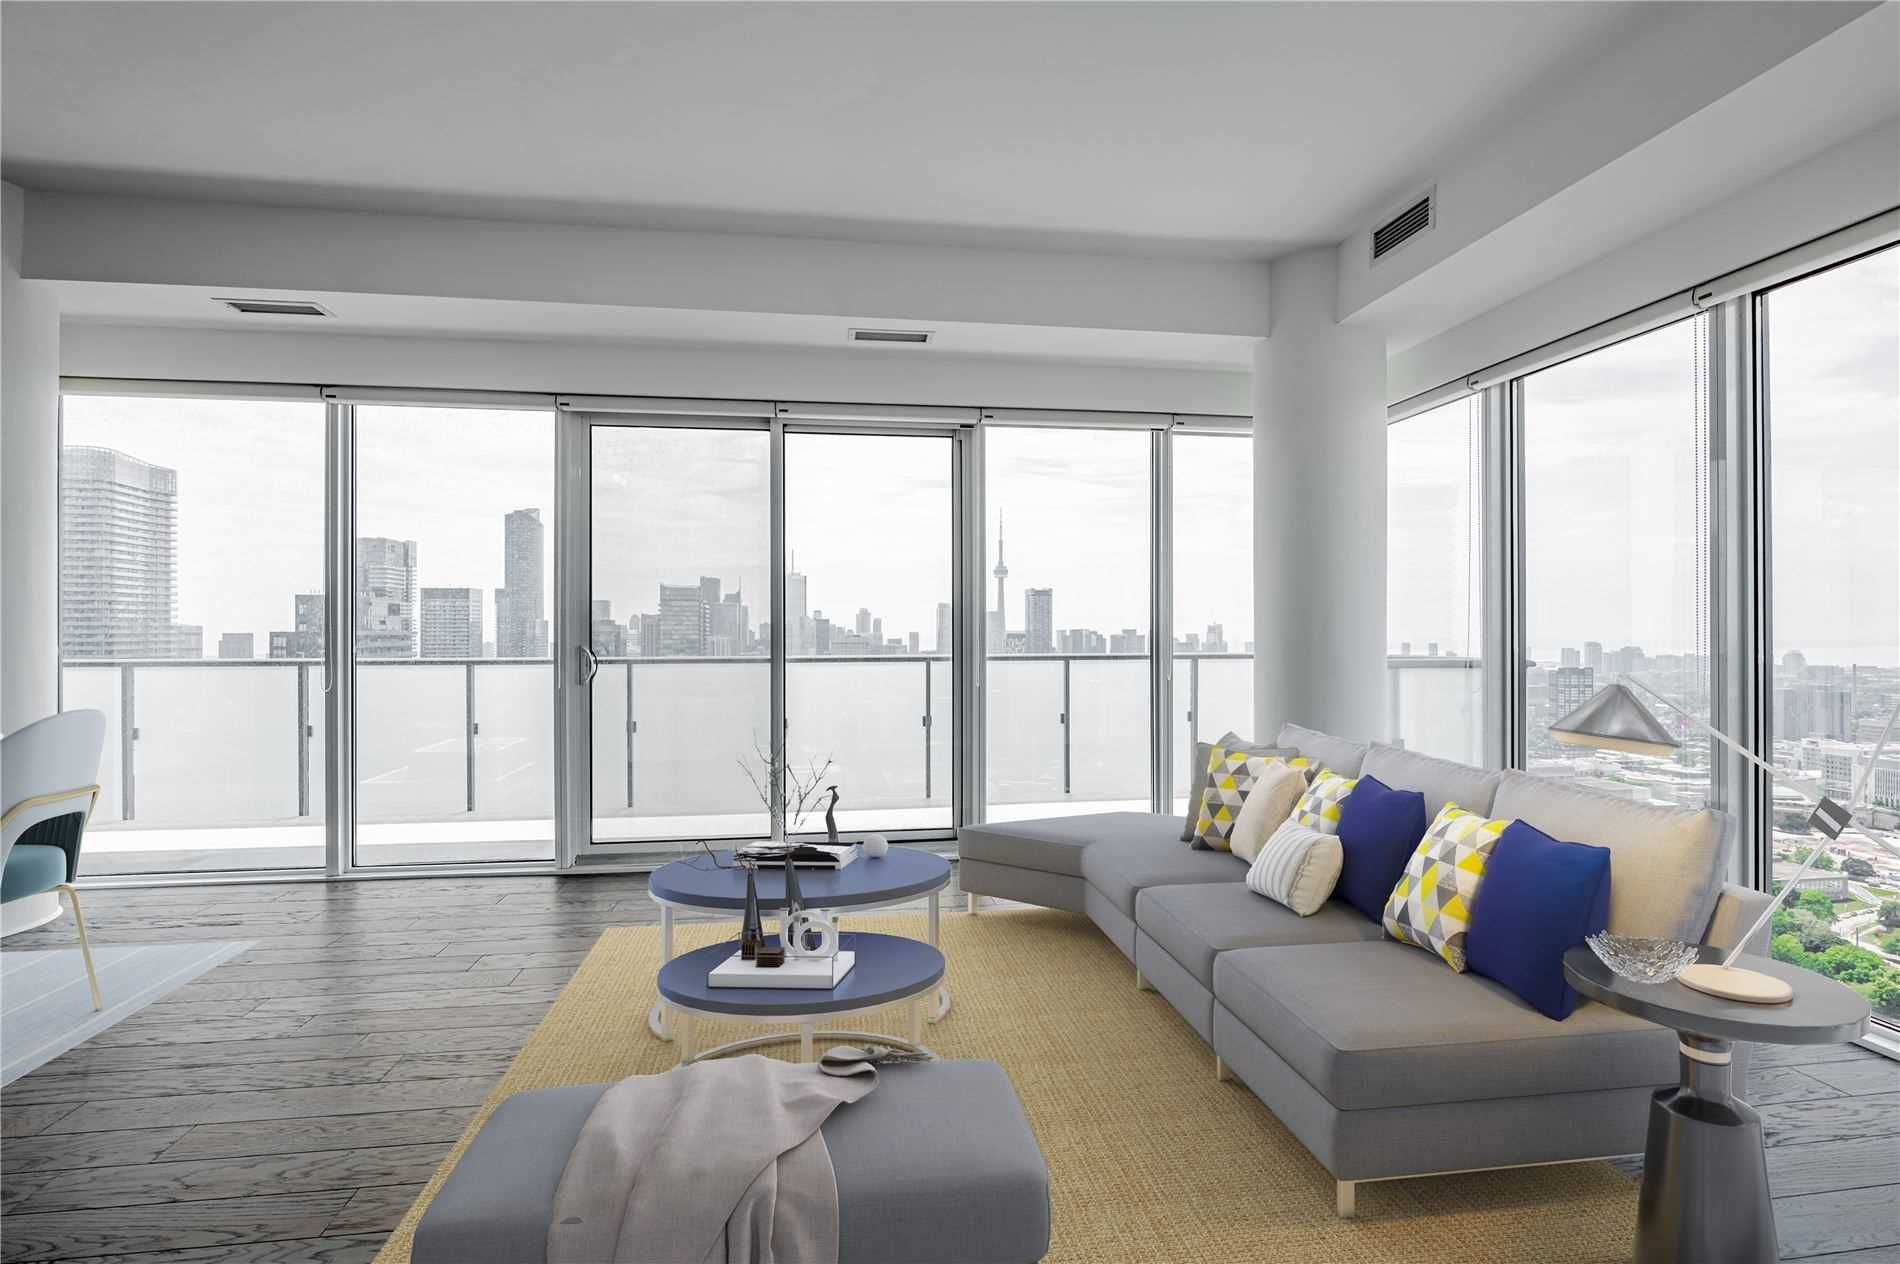 65 St. Mary St, unit 4202 for sale in Toronto - image #2